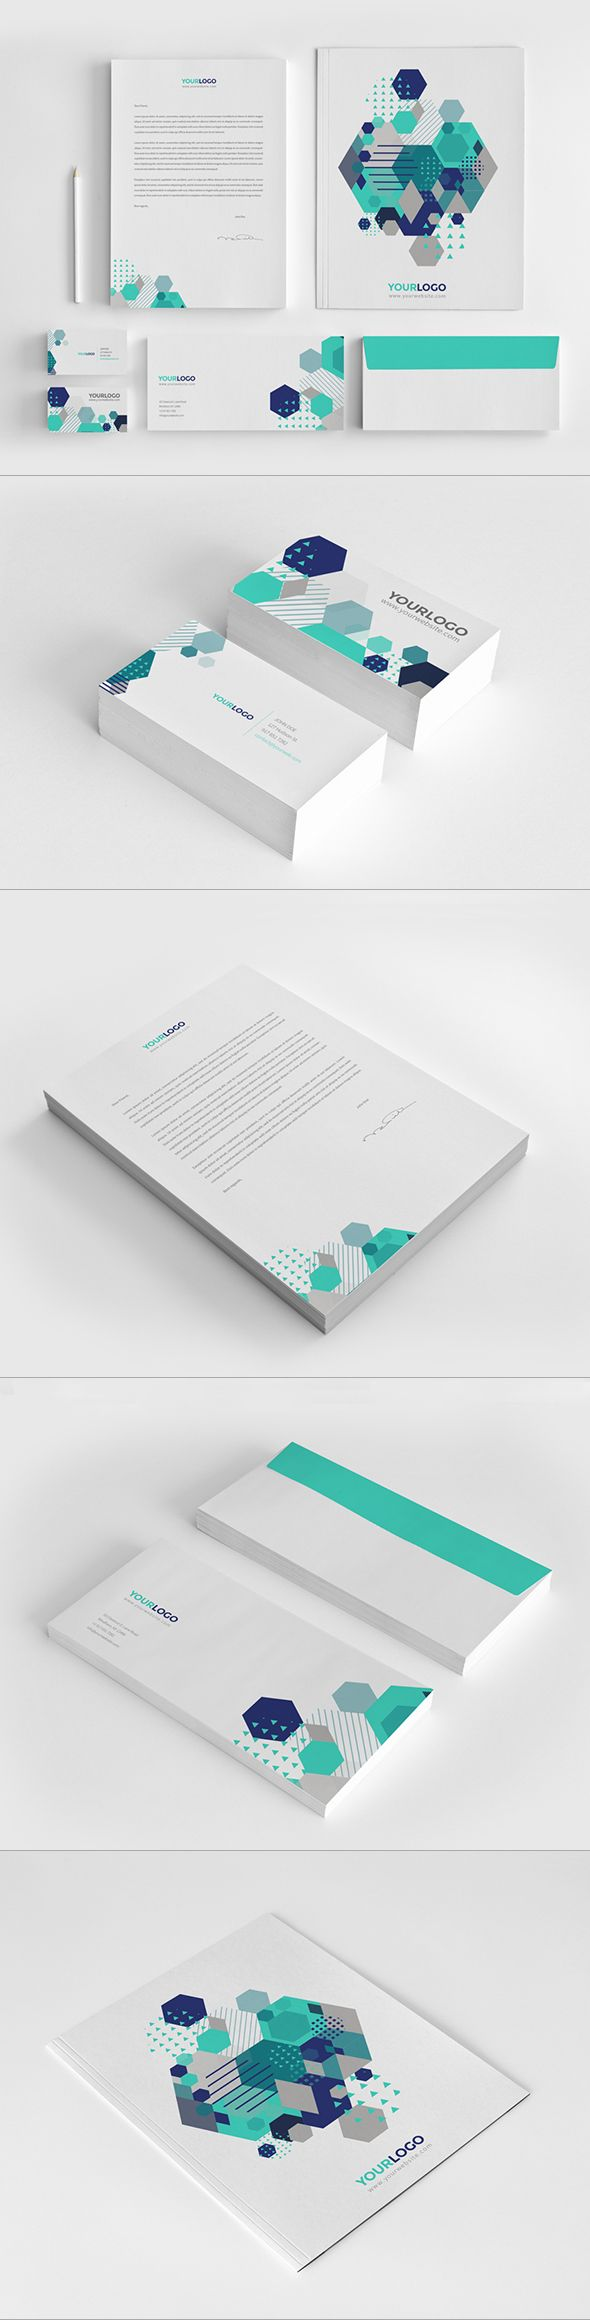 Abstract Modern Stationery Pack. Download here: http://graphicriver.net/item/abstract-modern-stationery-pack/7239814?ref=abradesign #design #stationery